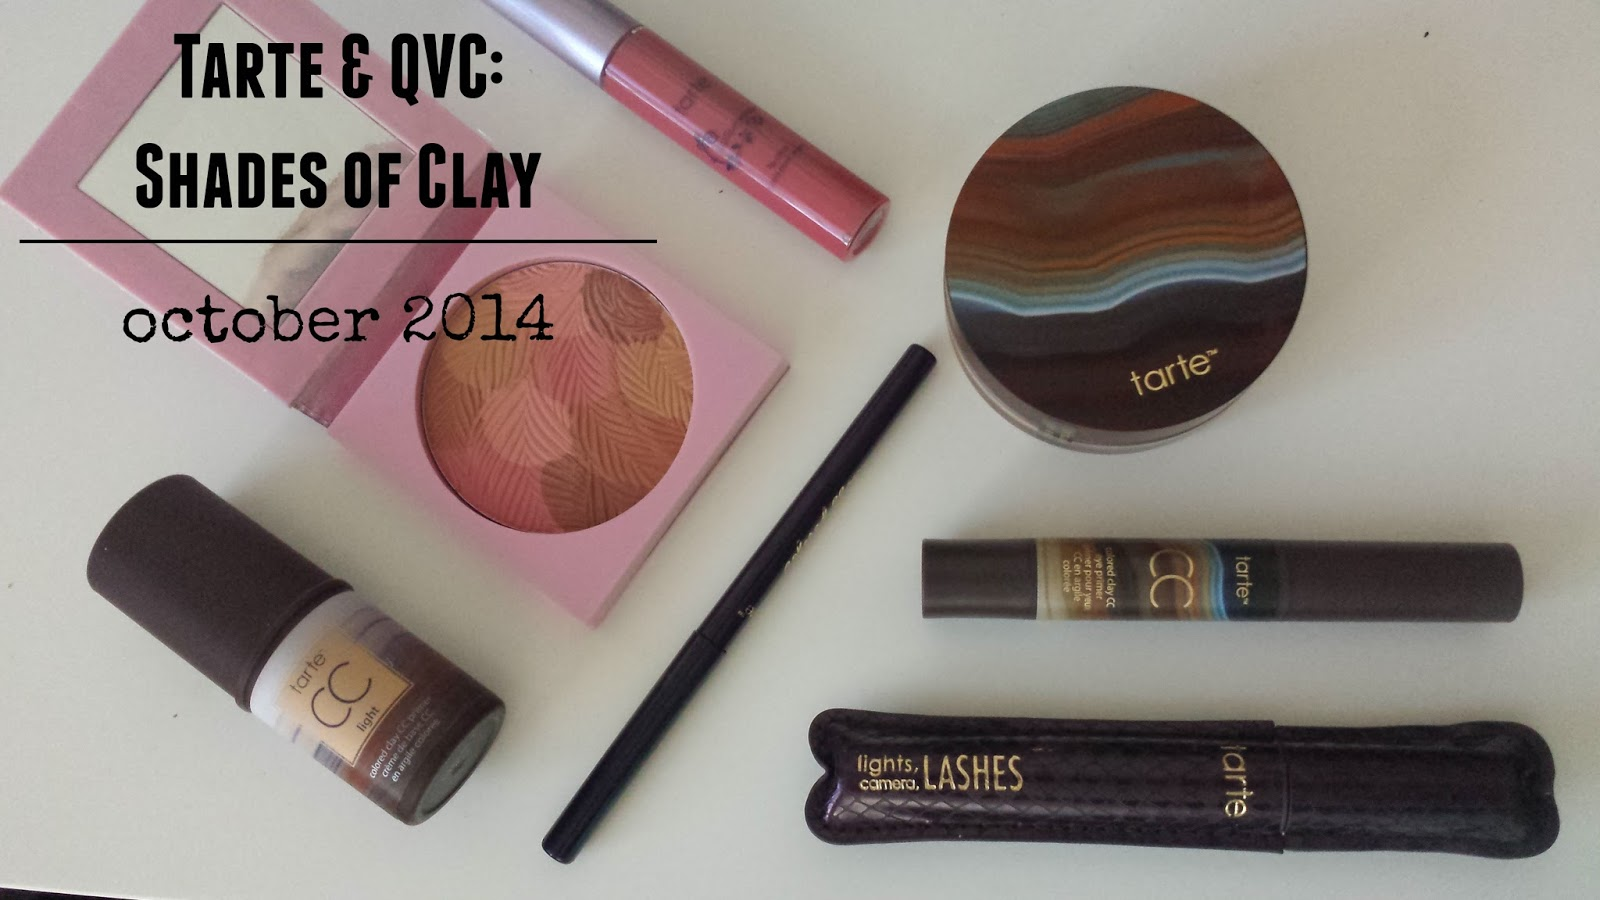 UNBOXING, Tarte Shades of Clay October 2014, cc primer, cc eye primer, bronzer blush in rose bronze, colored clay eyeliner in midnight plum, colored clay foundation, lipsurgence lip gloss in blushing bride, lights, camera, lashes 4 in 1 mascara review